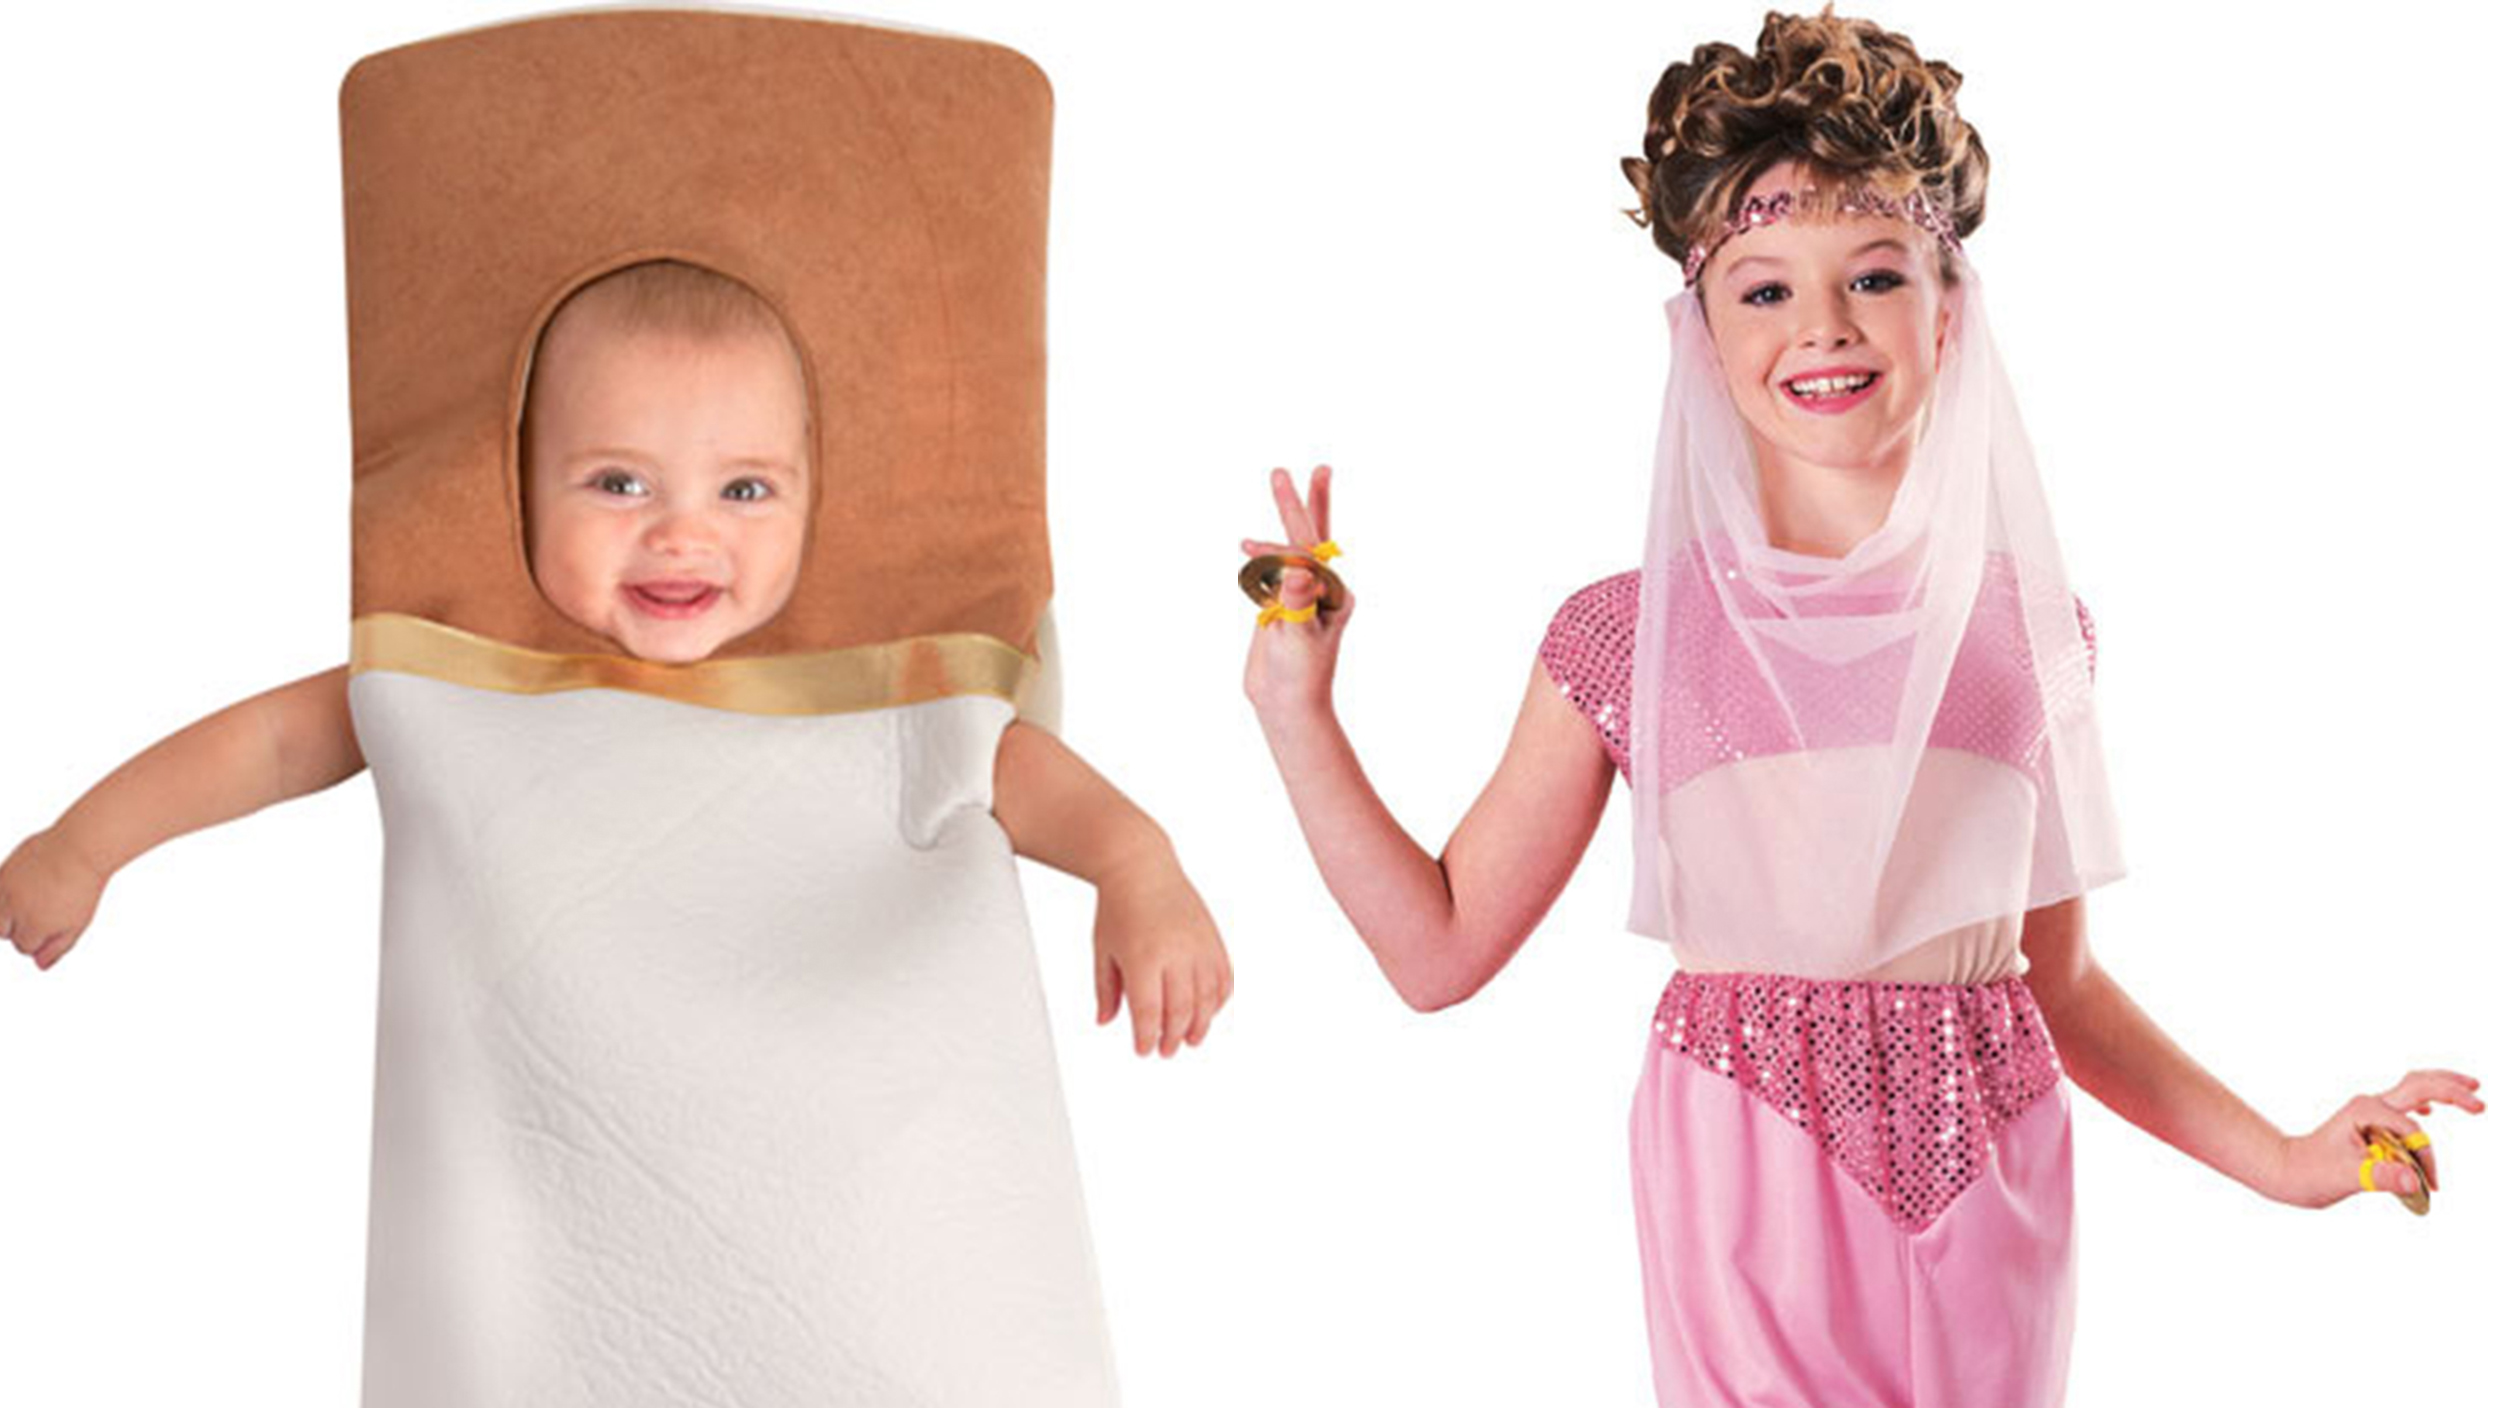 scary bad 9 worst halloween costumes for kids todaycom - Halloween Is Scary